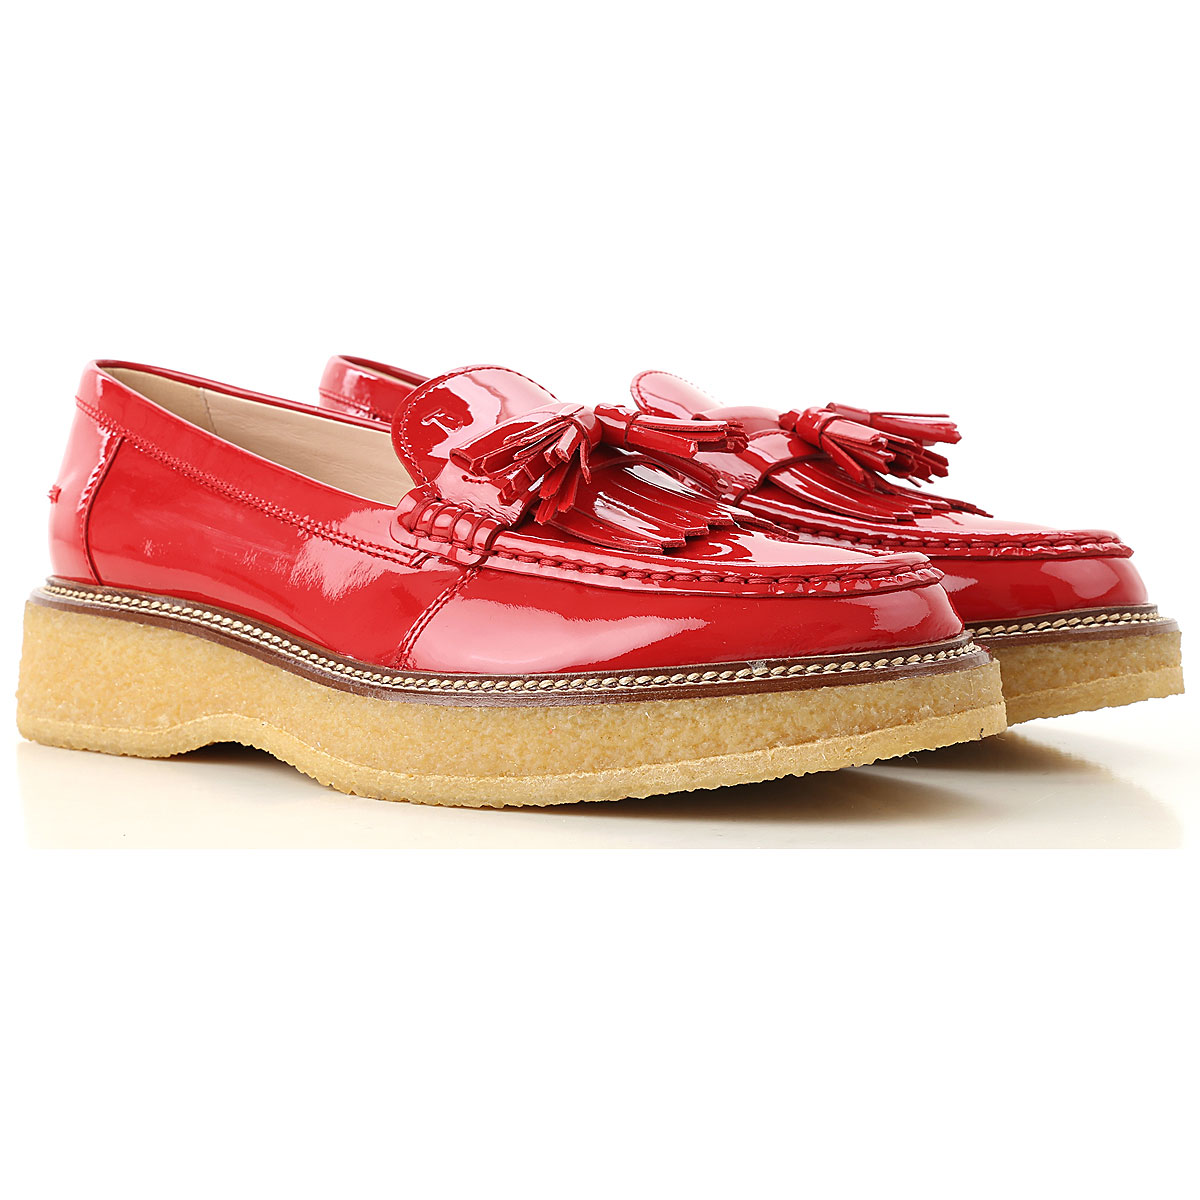 Tods Loafers moterims , Ruby Red, Patent oda, 2019, 37 38